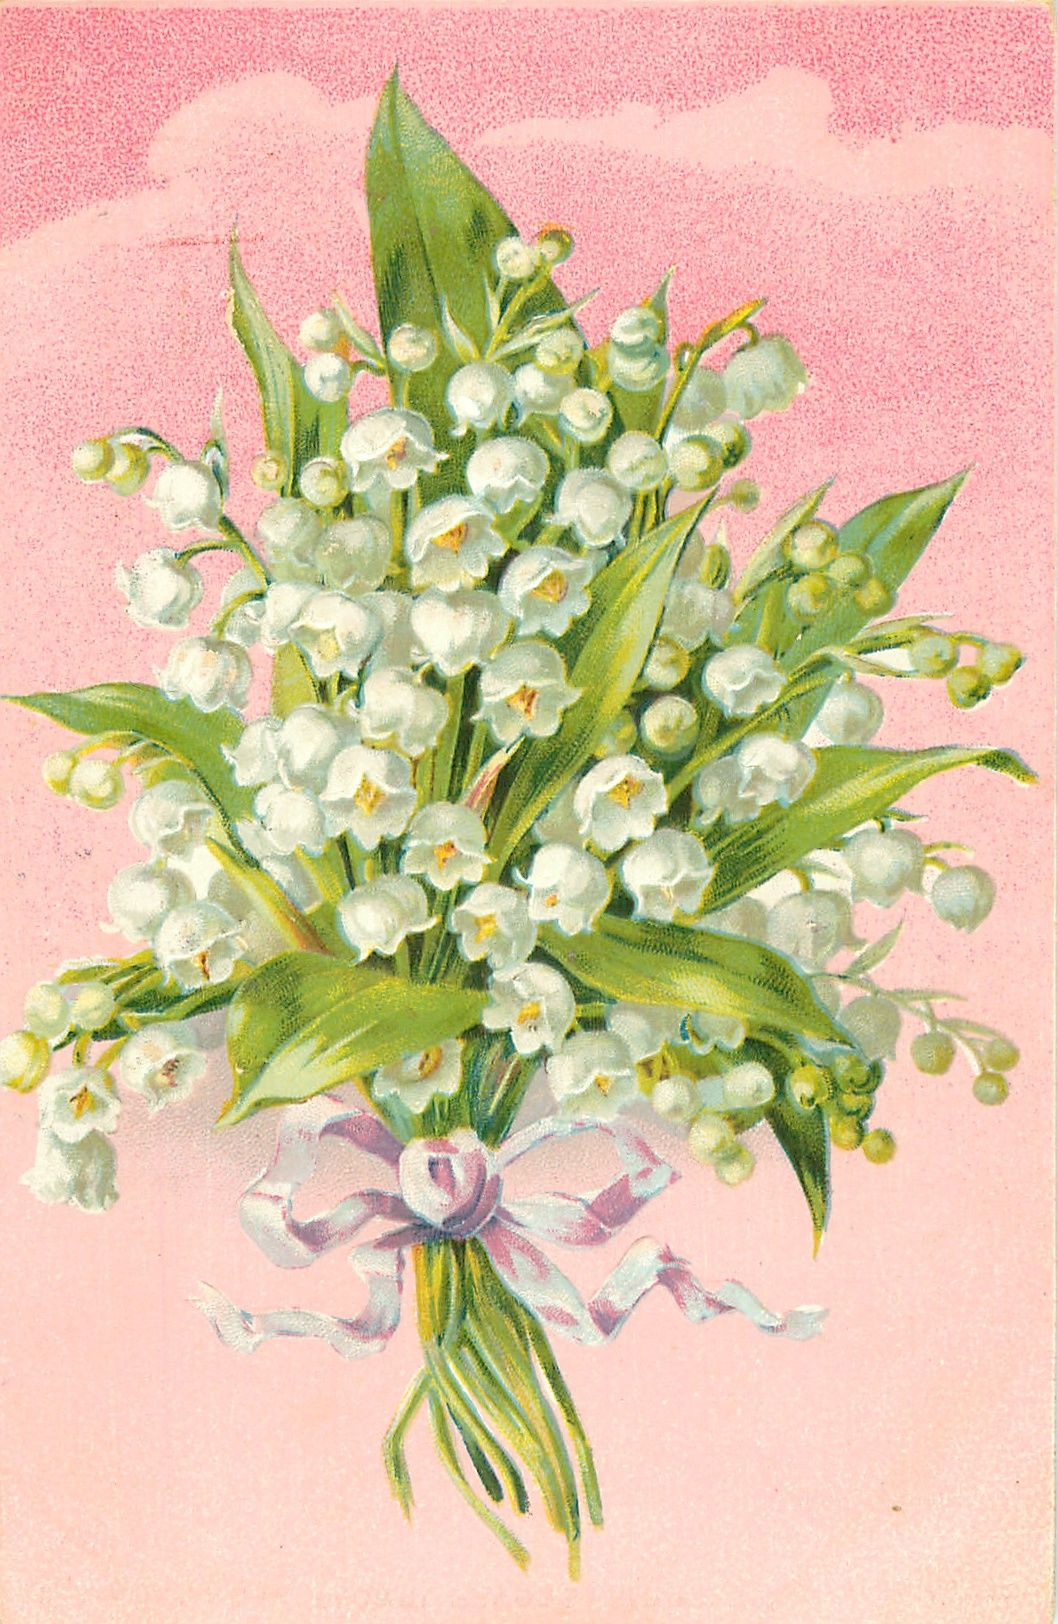 Full Sized Image Bunch Of Lilies Of The Valley Tied With Purple